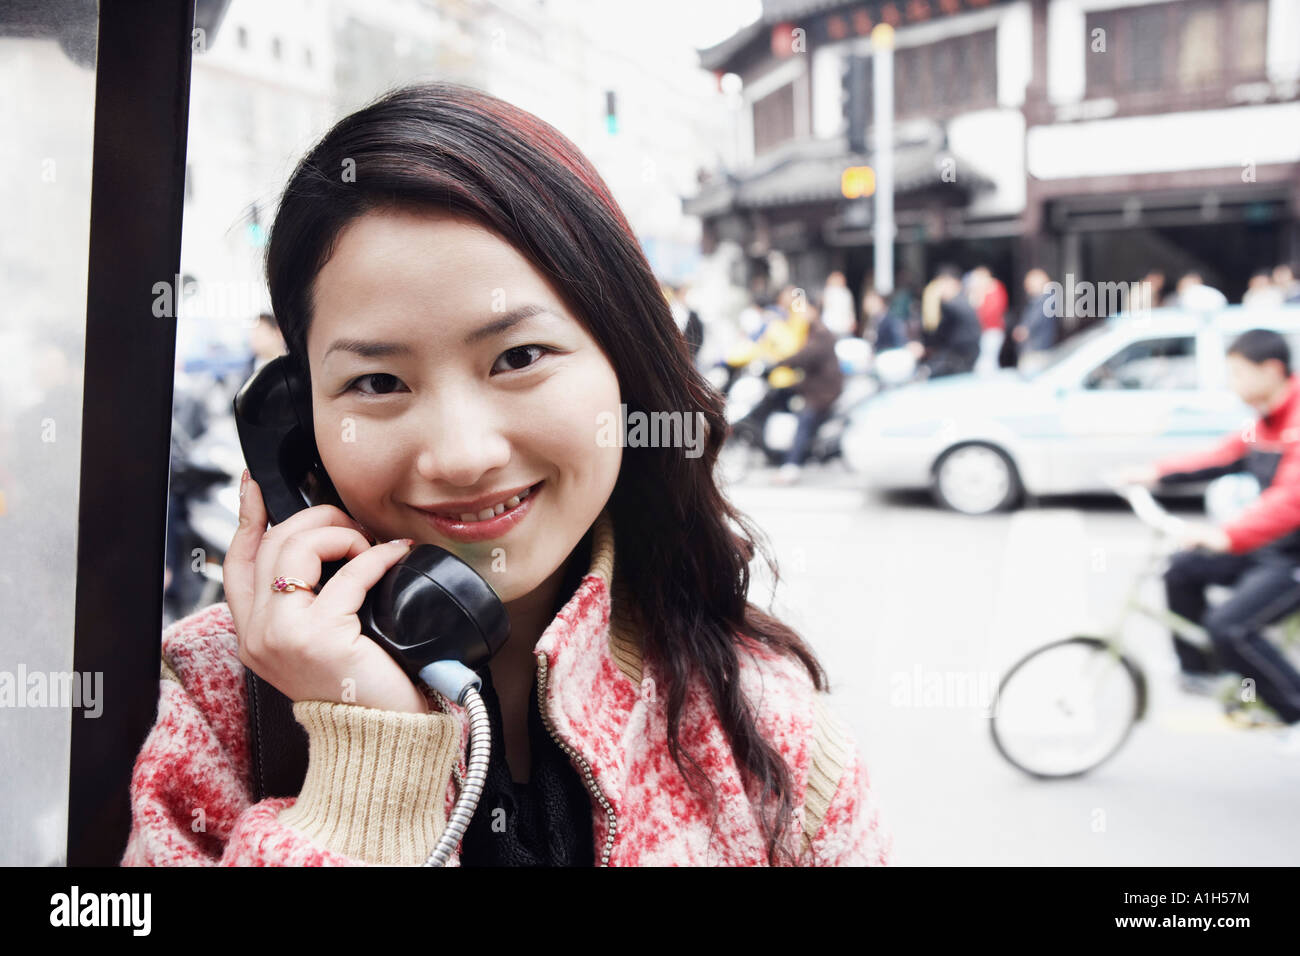 Portrait of a young woman using a telephone - Stock Image